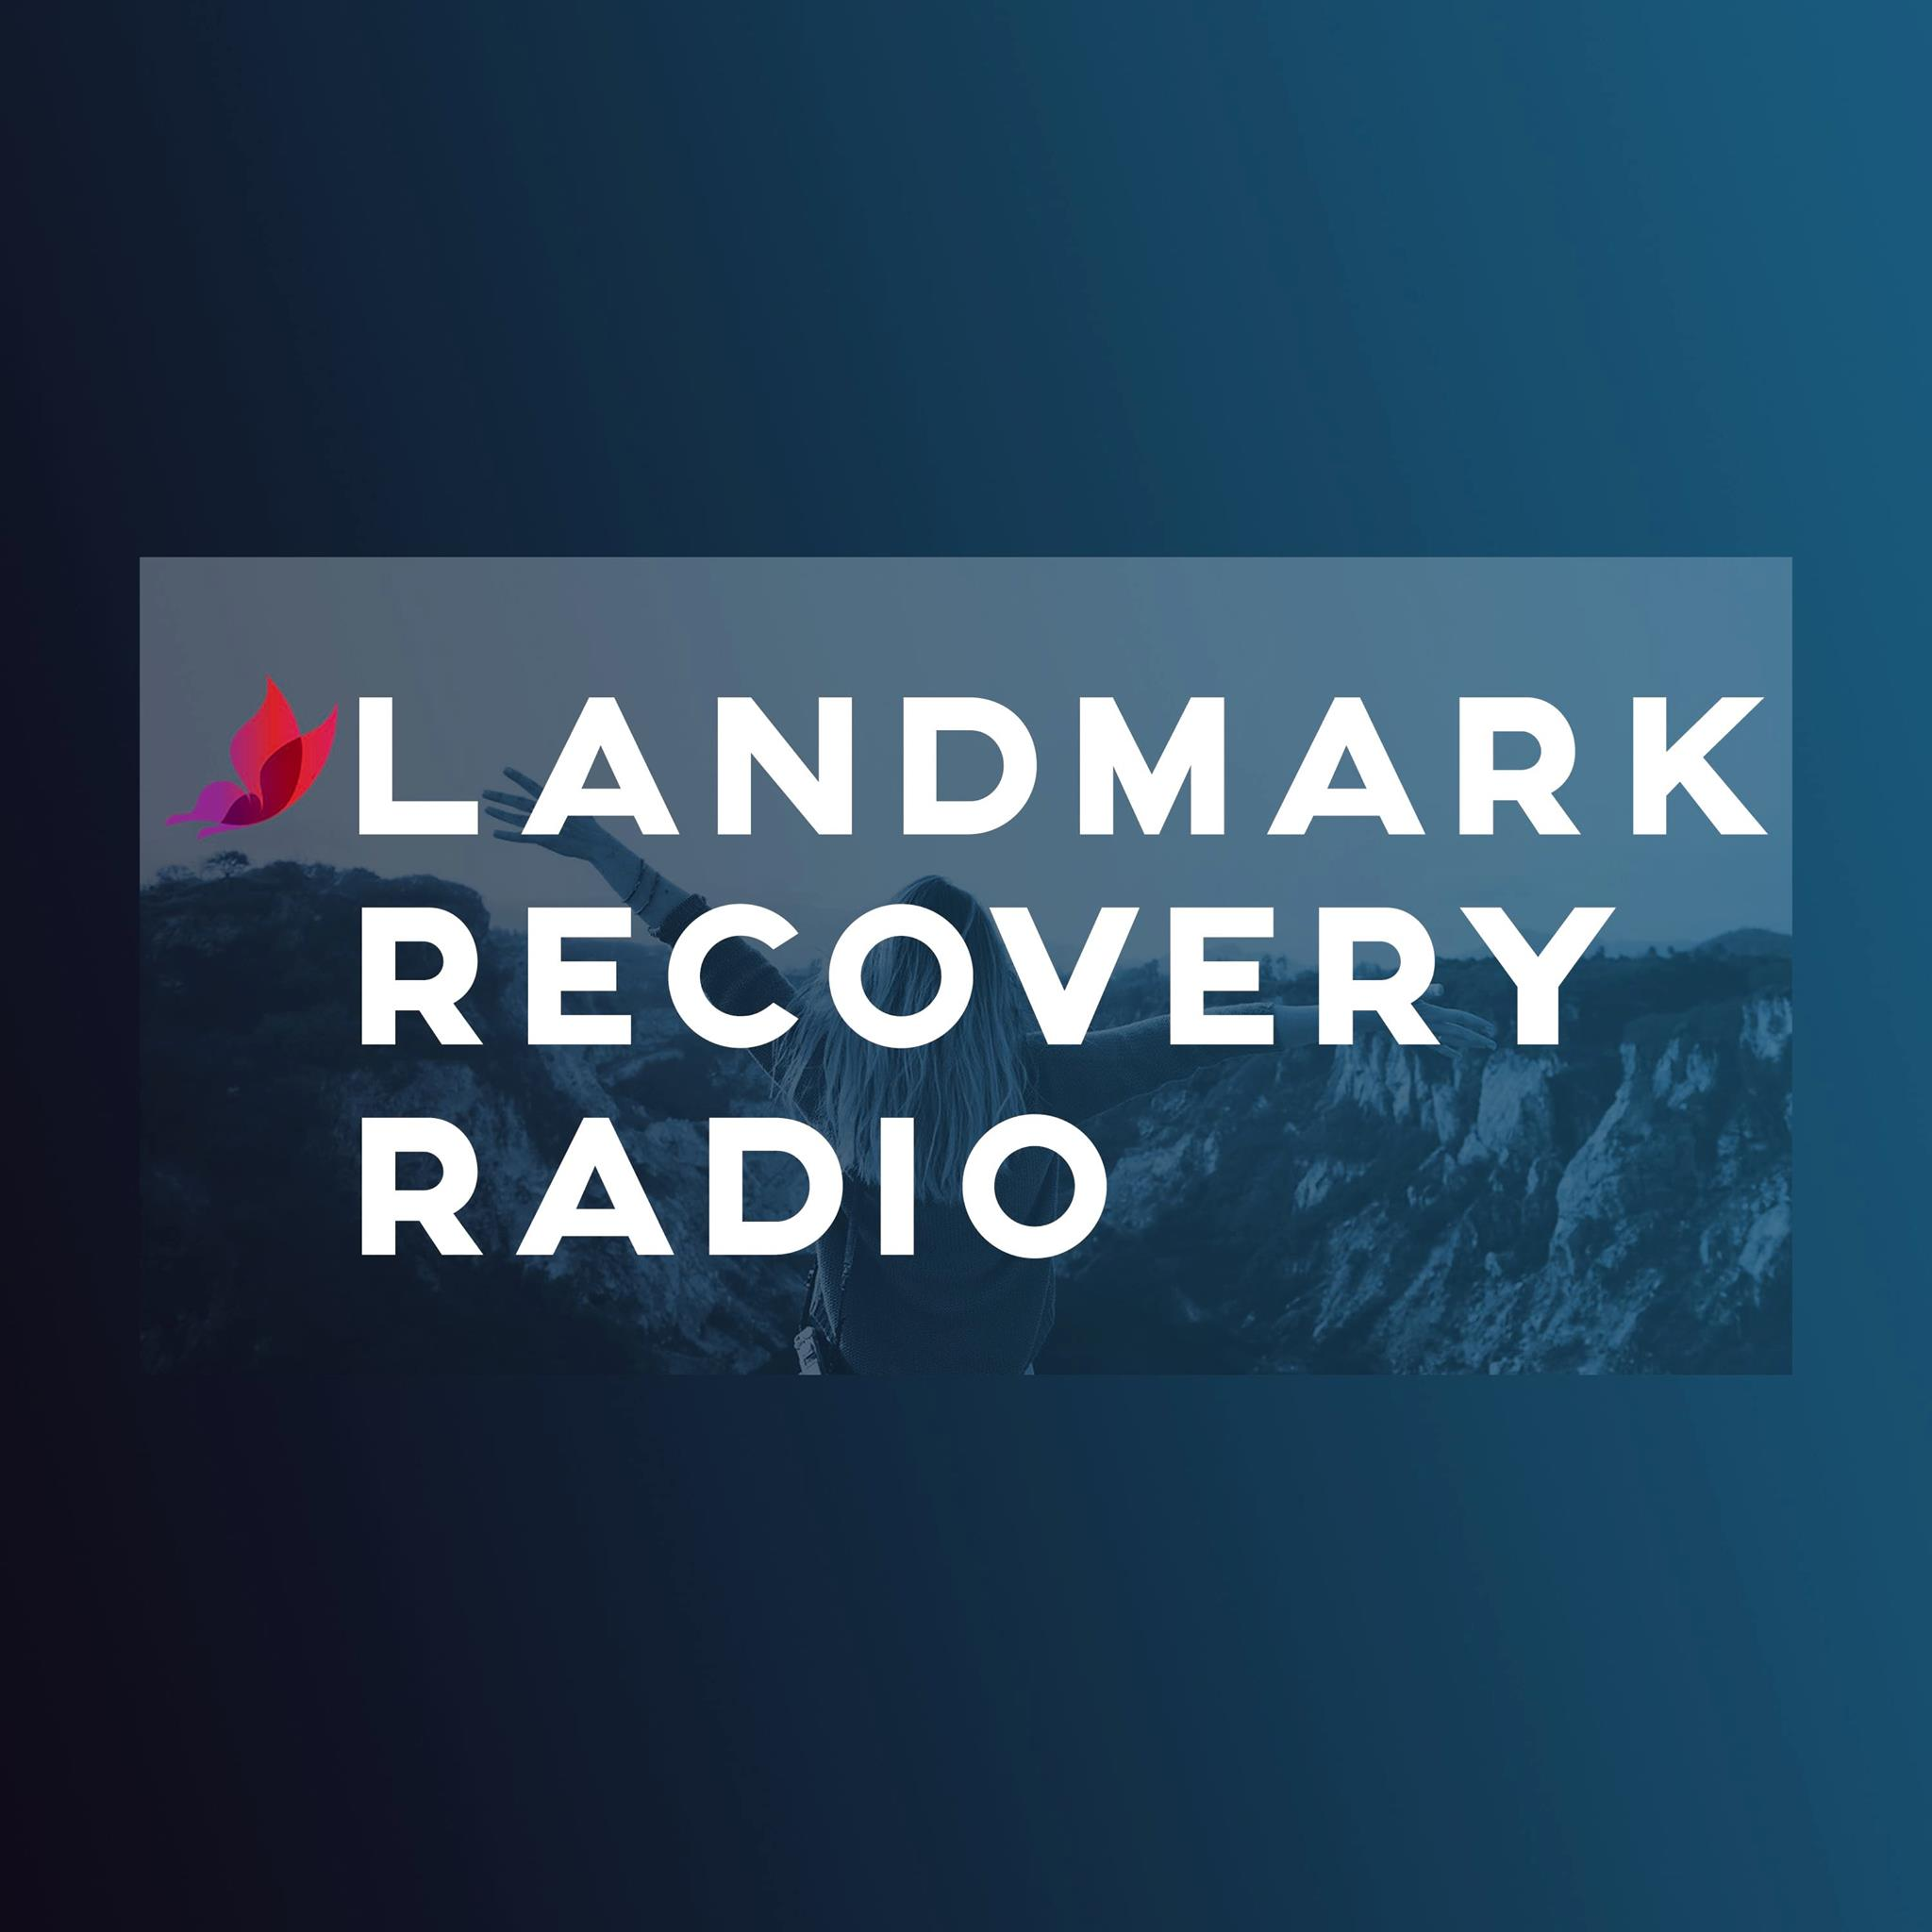 Ward Blanchard shares his personal story on Landmark Recovery Radio